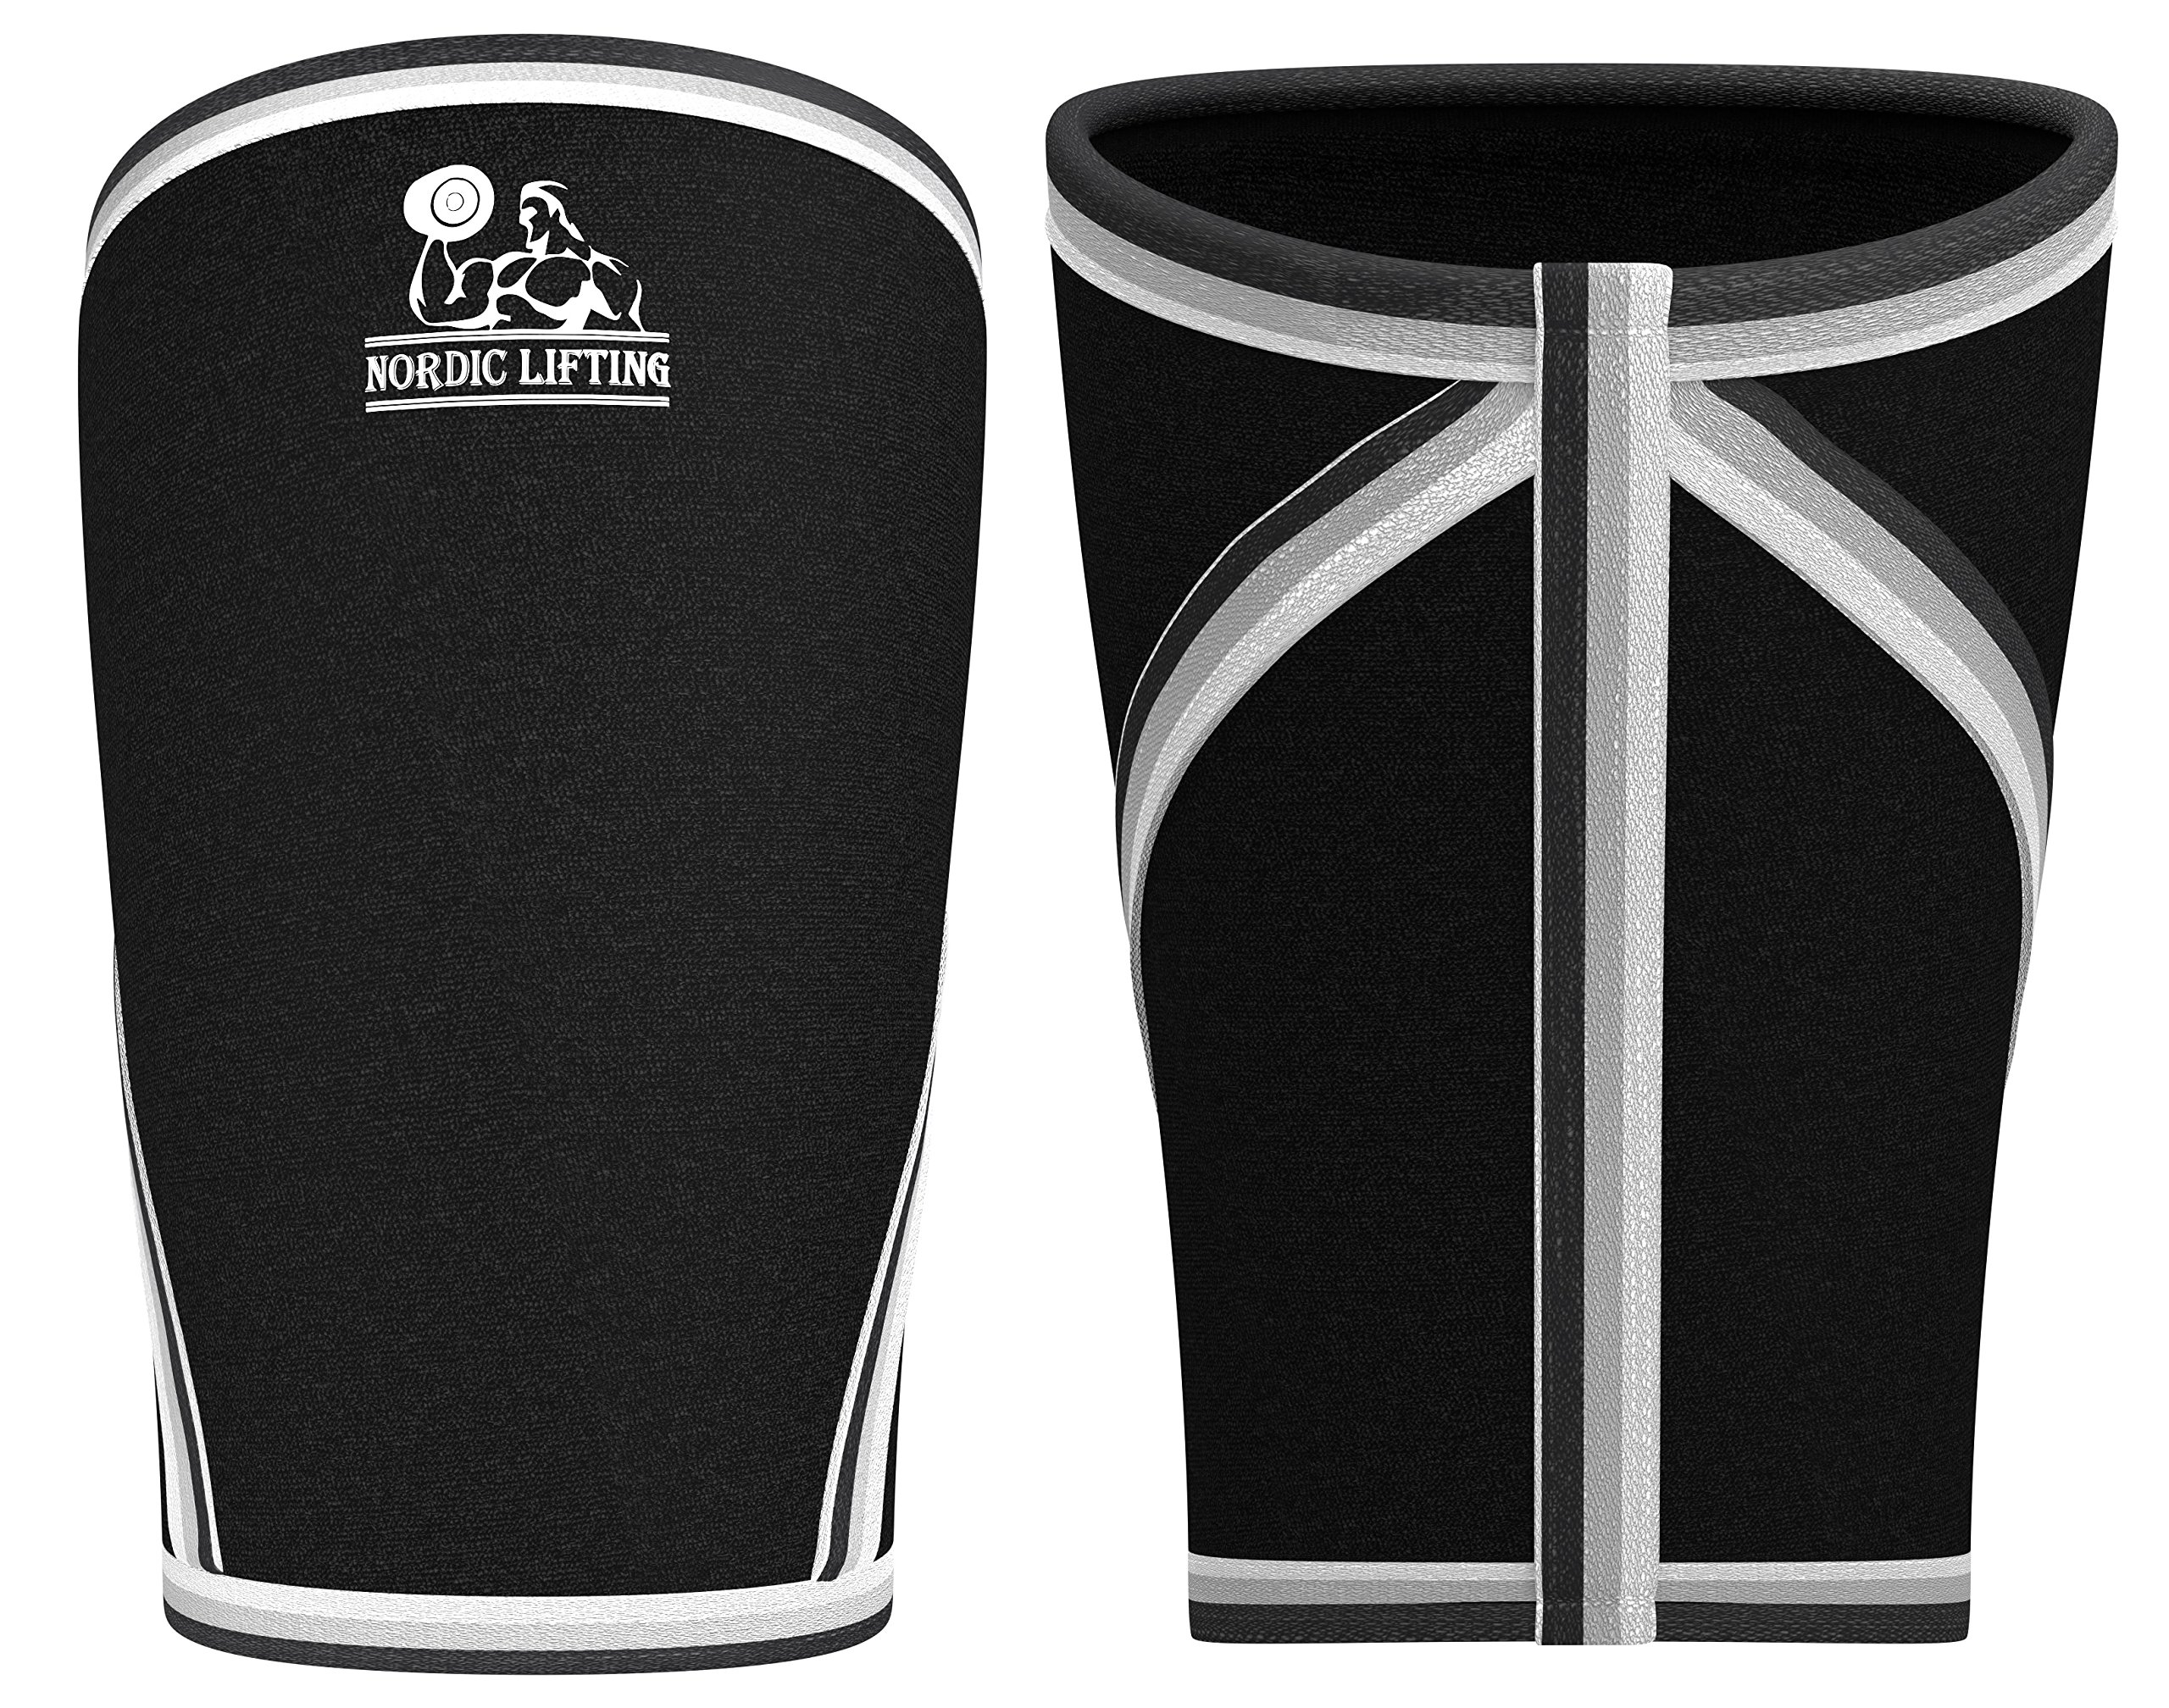 Nordic Lifting Knee Sleeves (1 Pair) Support & Compression for The Best Squats, 7mm Neoprene X-Small by Nordic Lifting (Image #4)